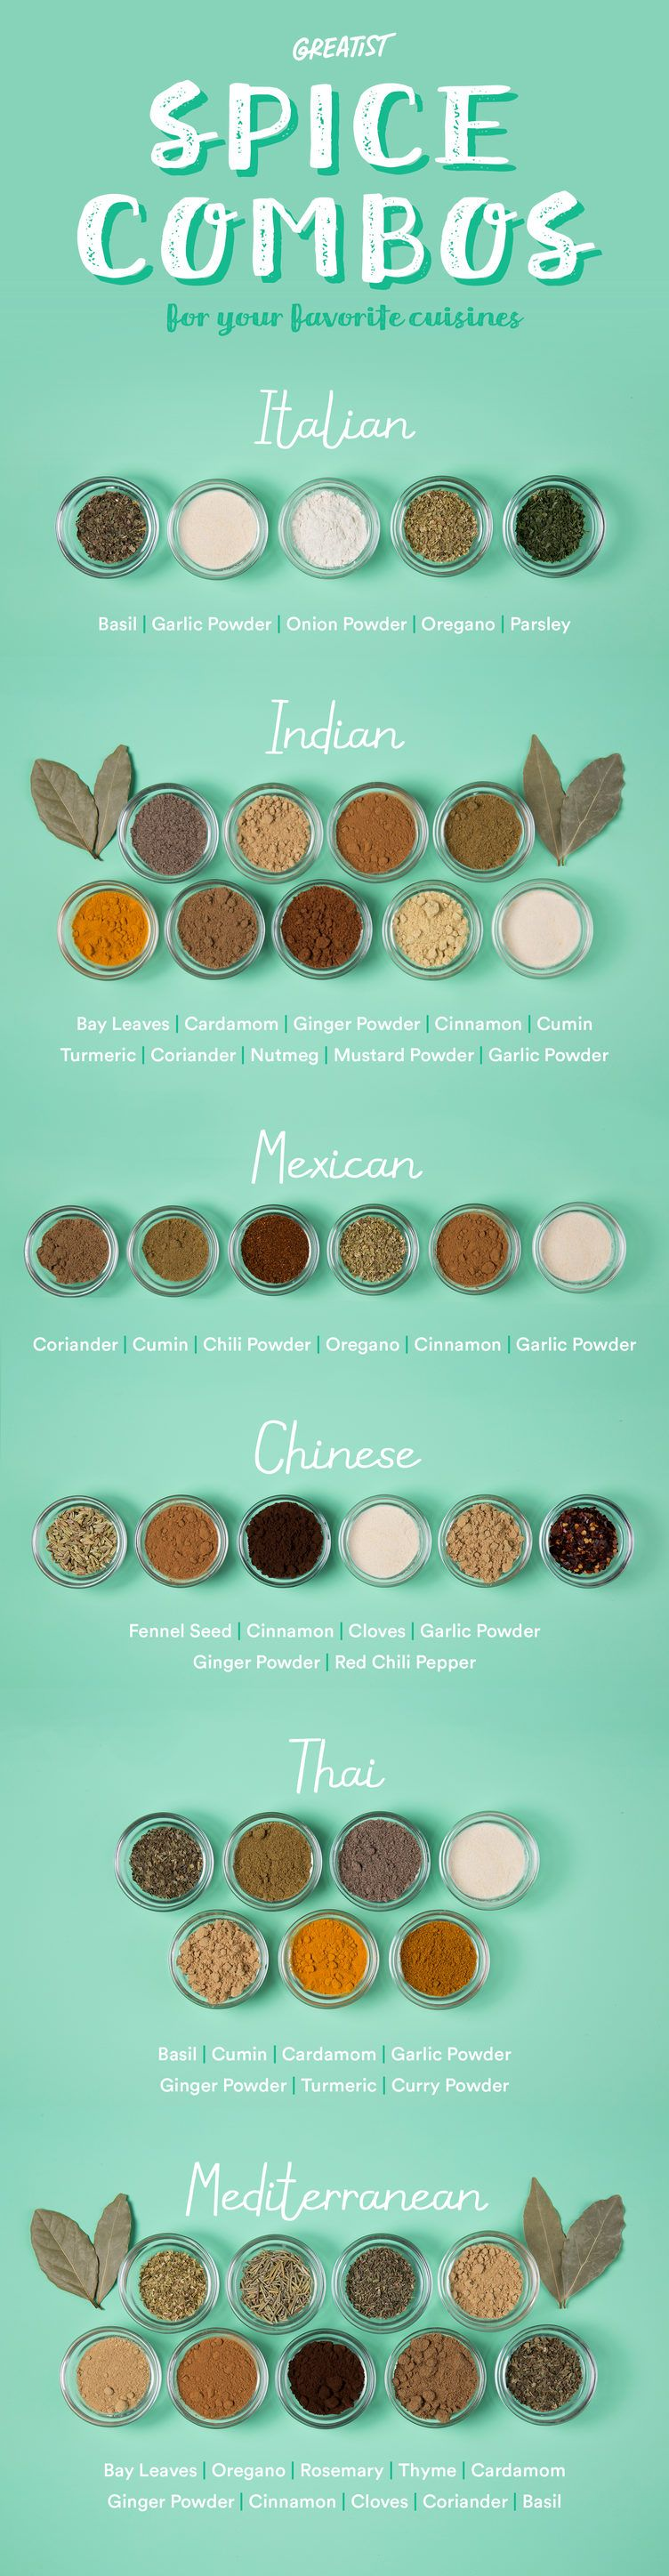 A Visual Guide to Spice Combos So You Can Season Like a Champ #cookingtips